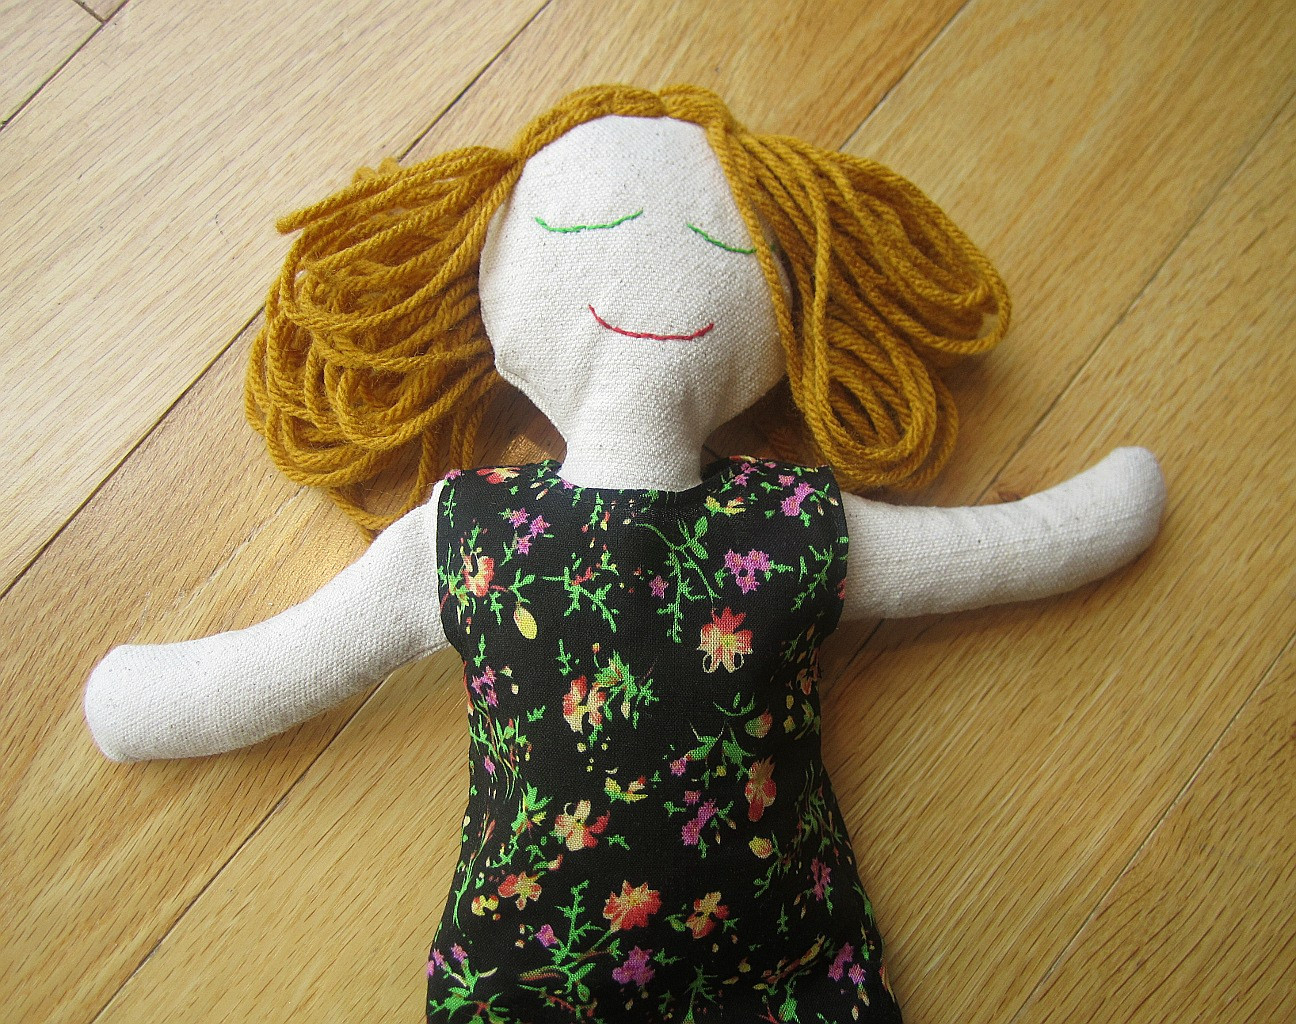 Doll Patterns Elegant Rag Doll Free Sewing Pattern and Instructions Of Doll Patterns Unique Knitting Patterns Dolls Clothes